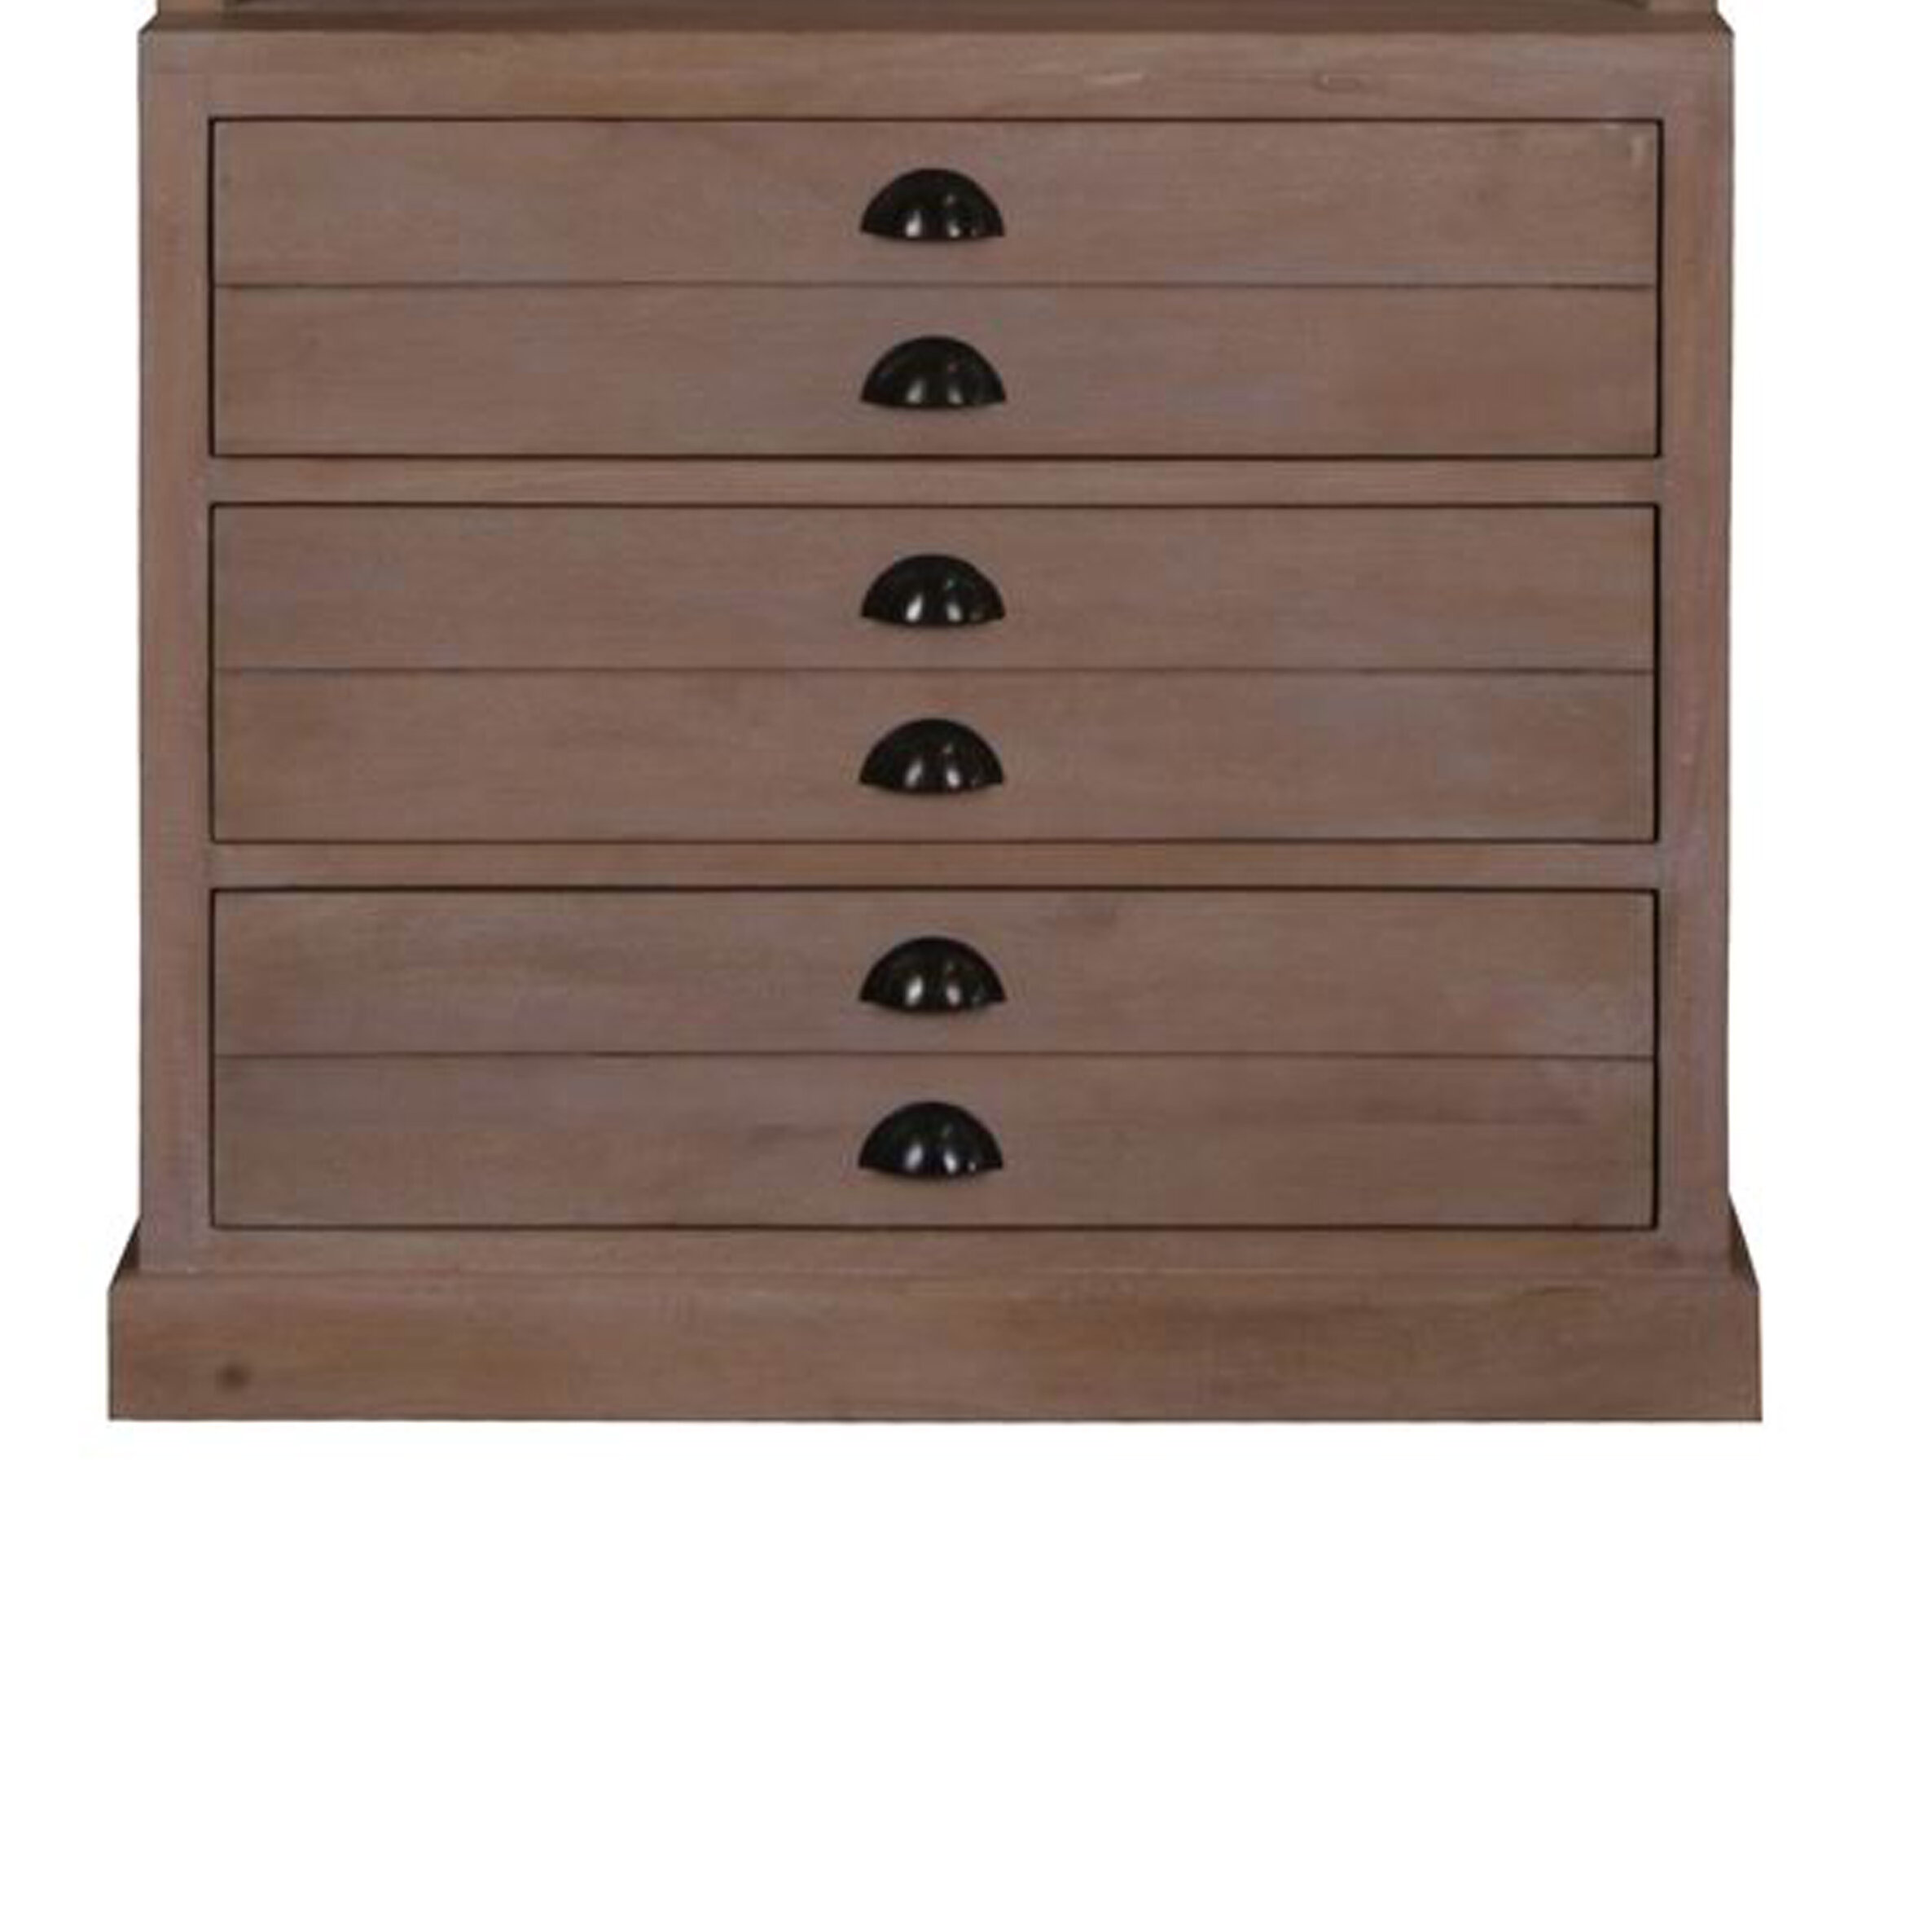 Awesome solid Wood Lateral File Cabinet 2 Drawer